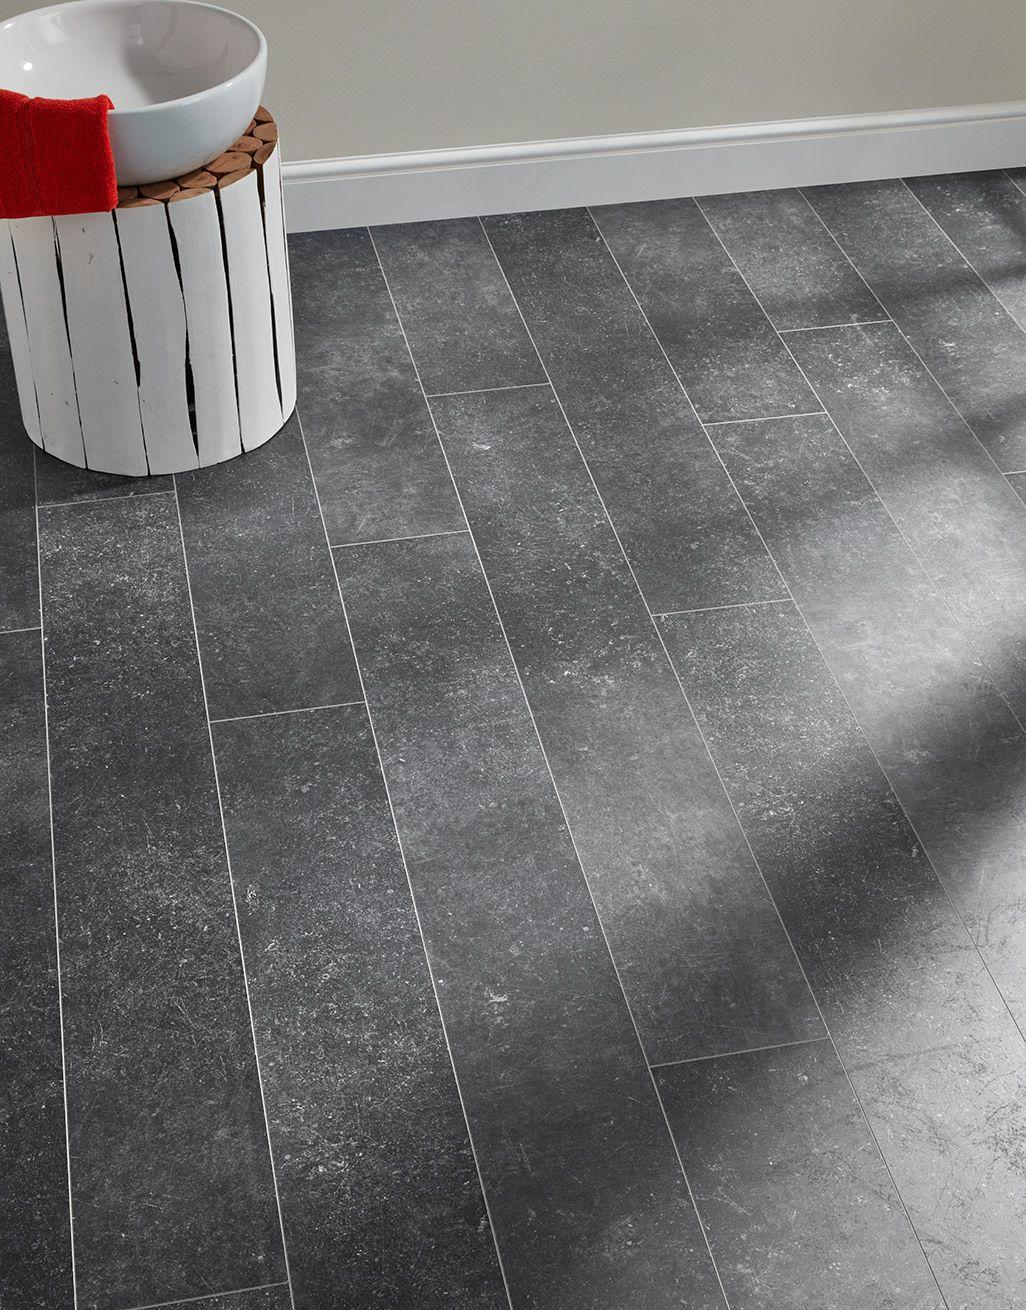 Baelea Ceramic Aqua Industrial Dark Grey 8mm Tile Effect Laminate Flooring